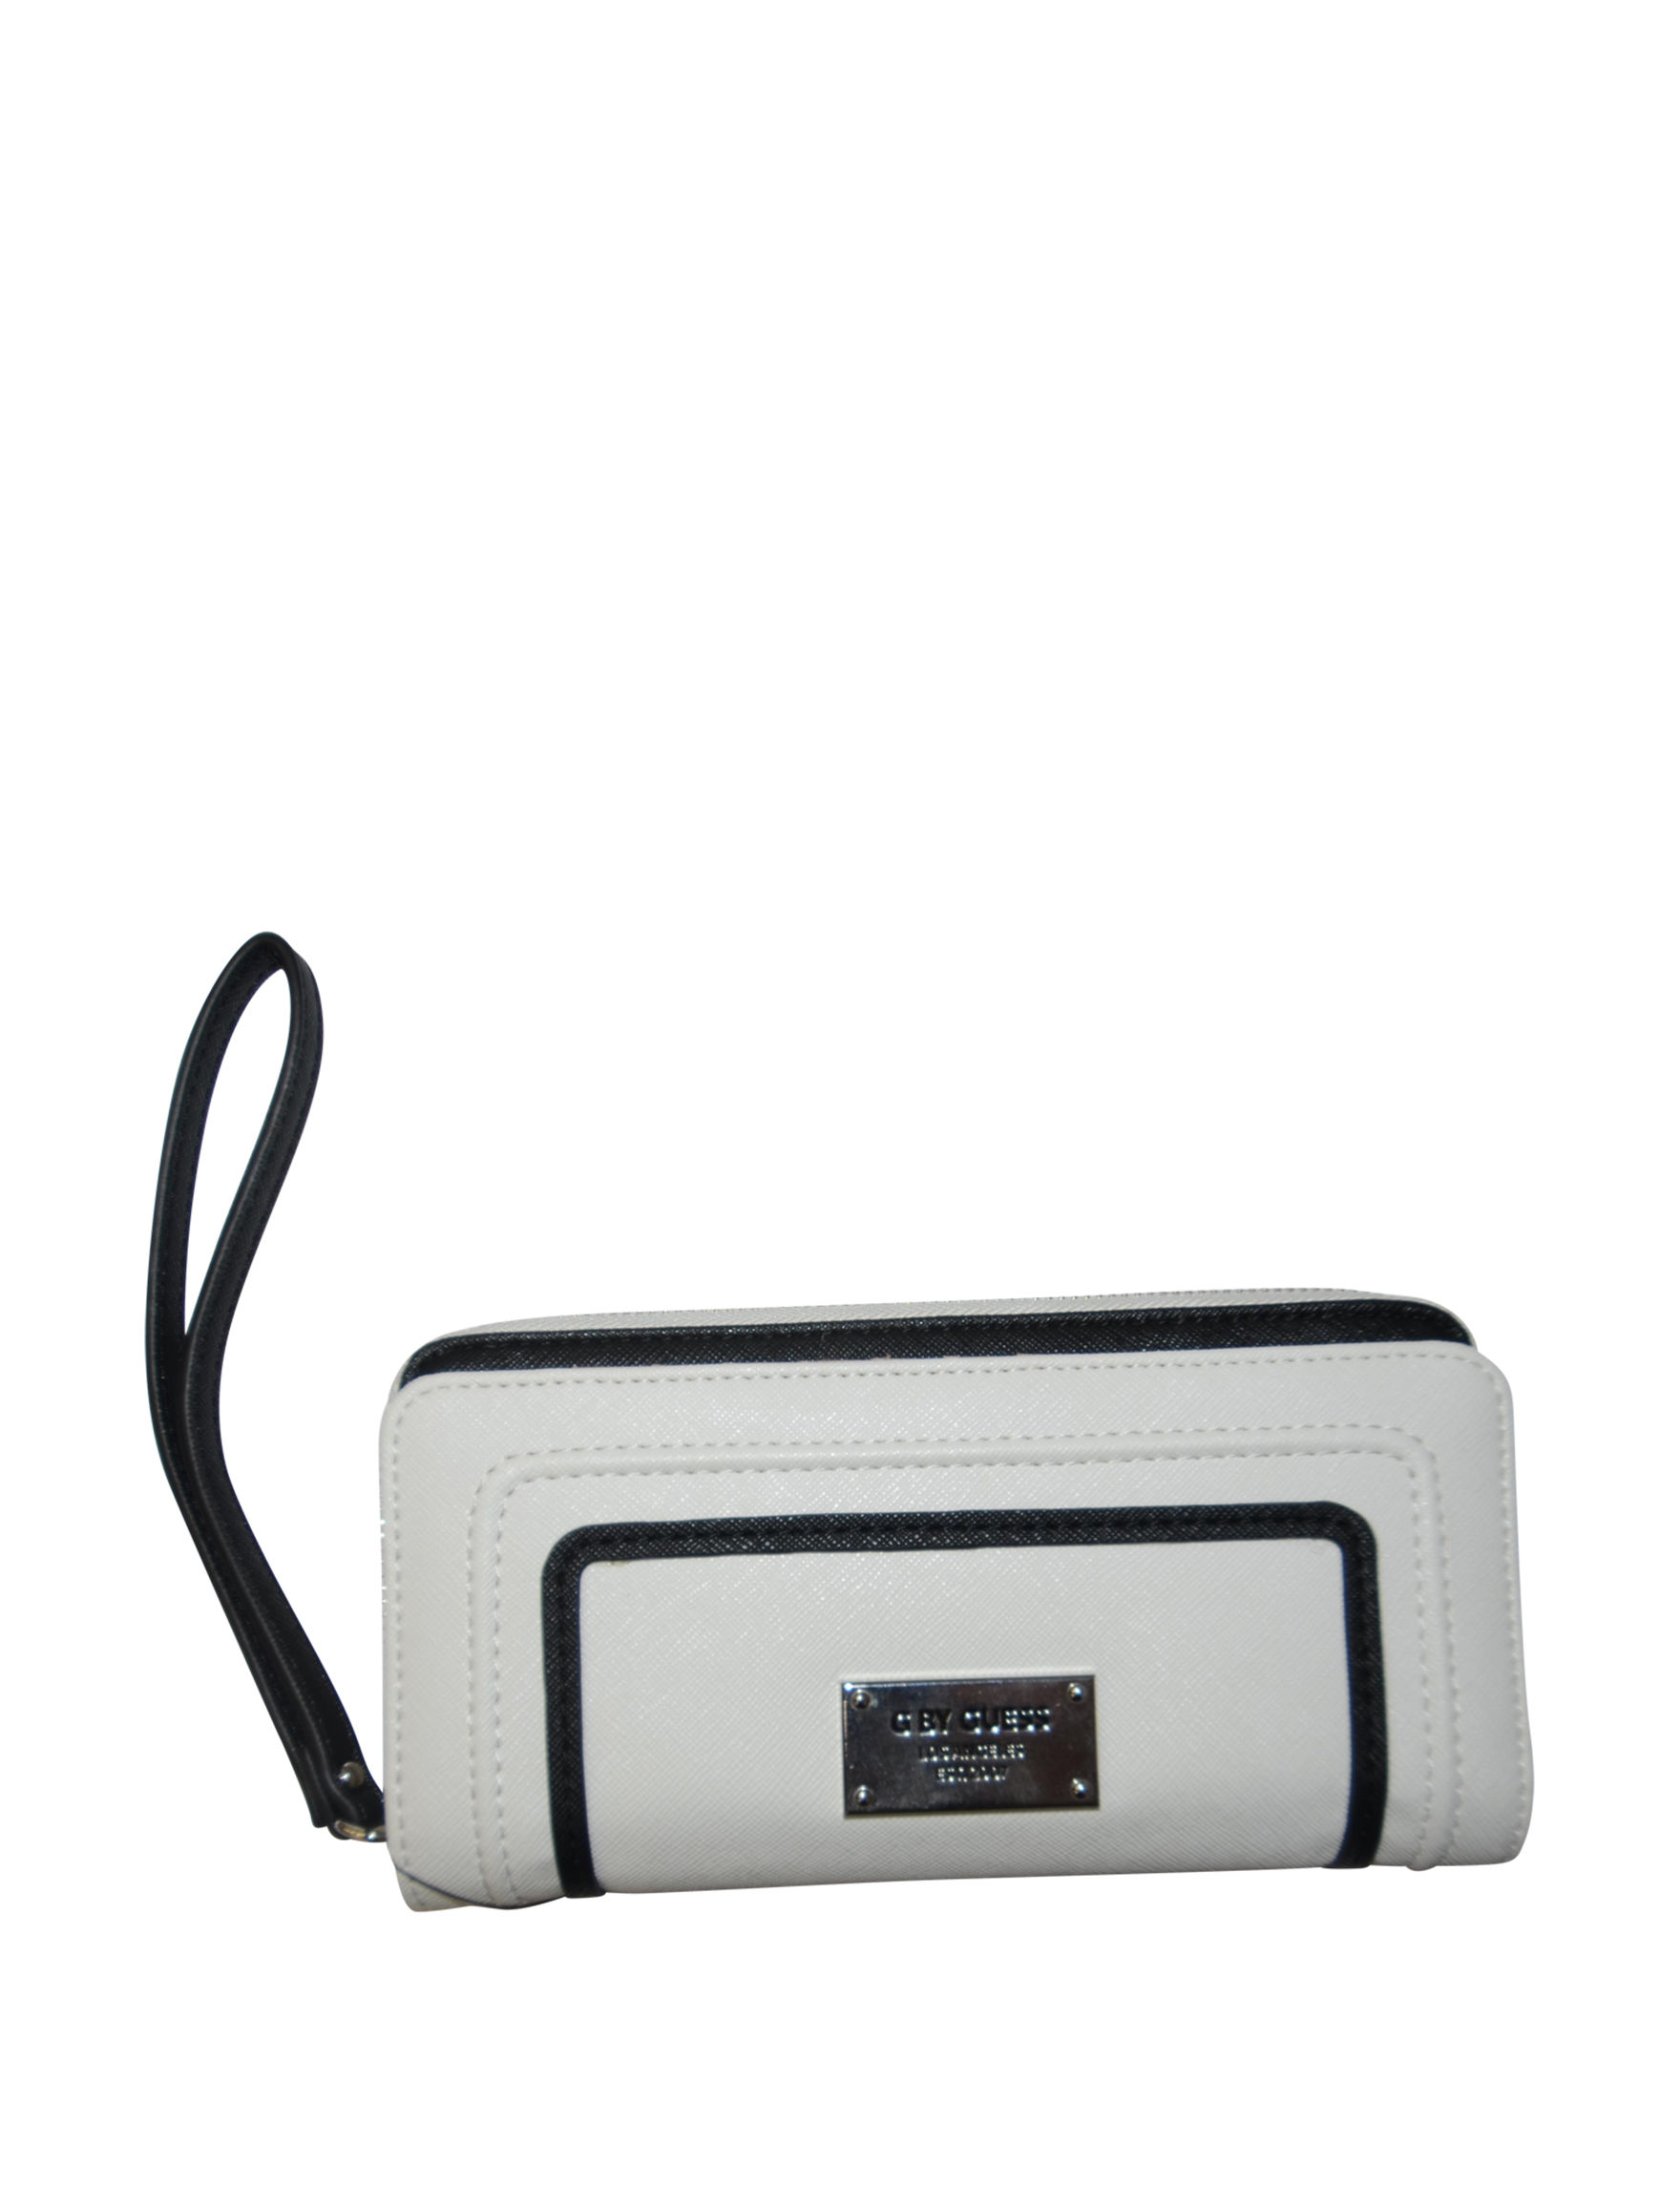 G by Guess White Wallet Wristlet